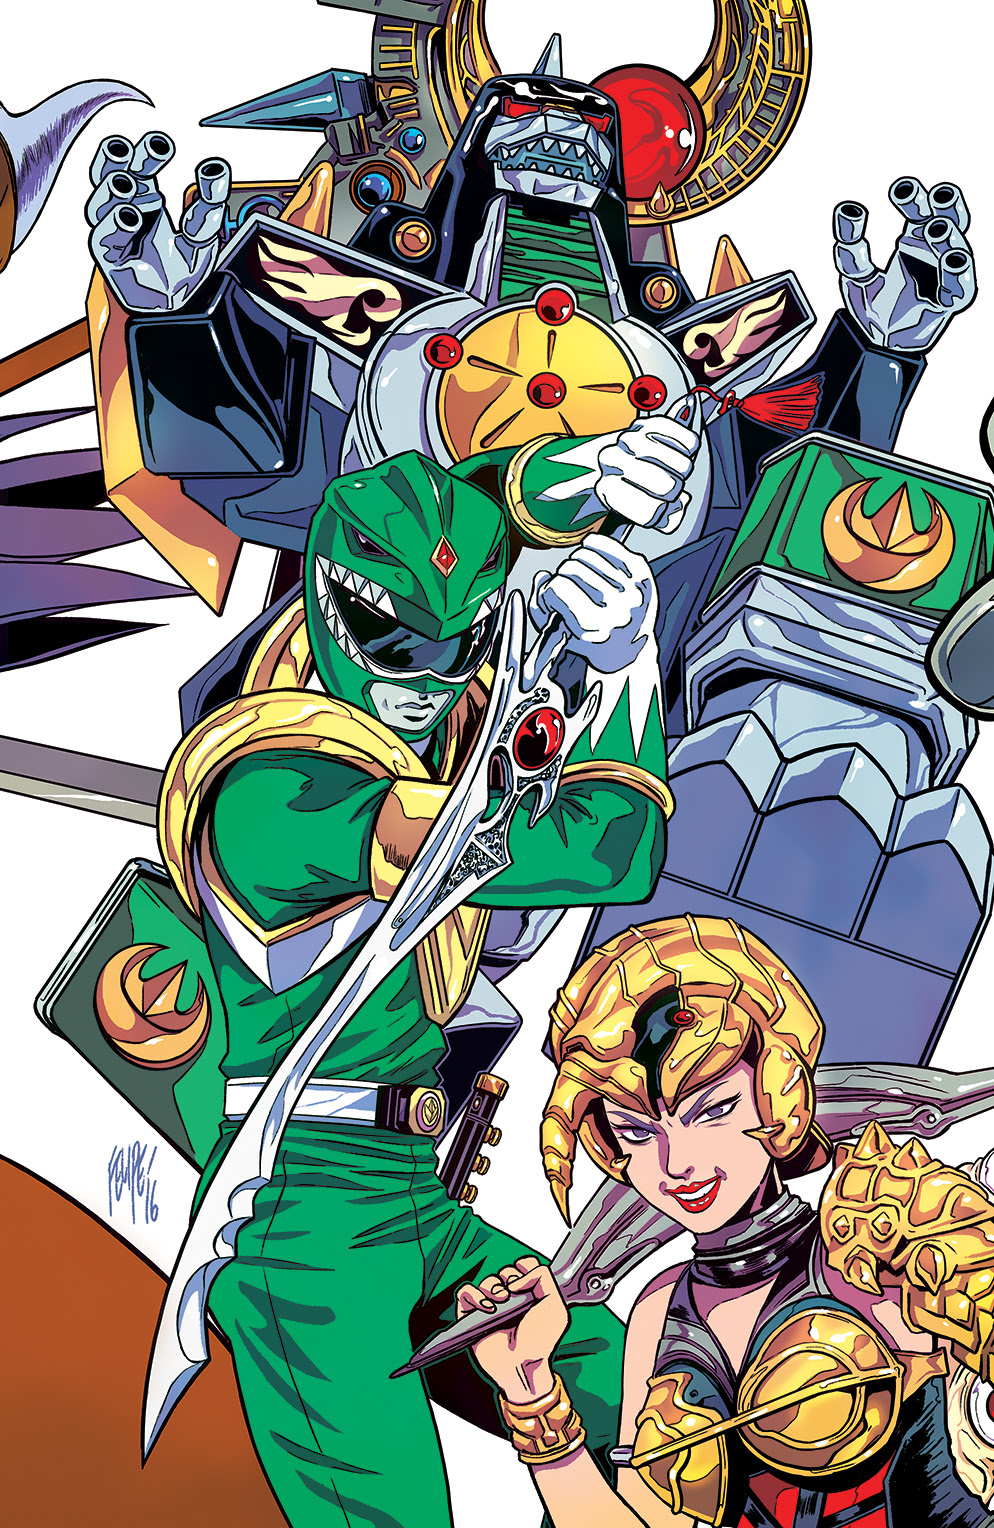 Mighty Morphin Power Rangers #1 ECCC Exclusive